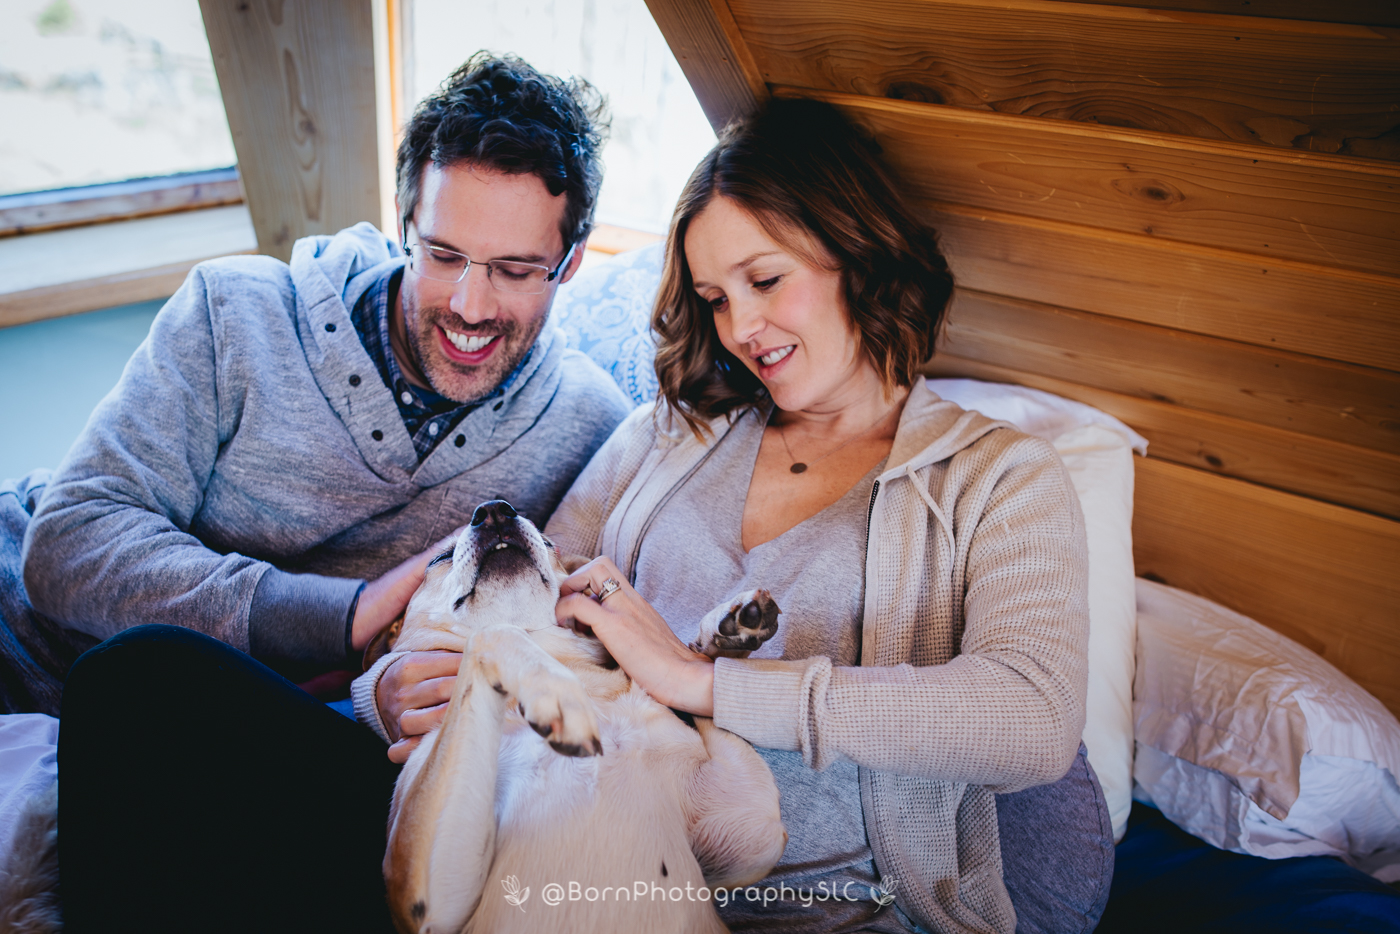 Born-Birth-Photography-Maternity-Babymoon-Salt-Lake-City-UT-Telluride-CO-17.jpg